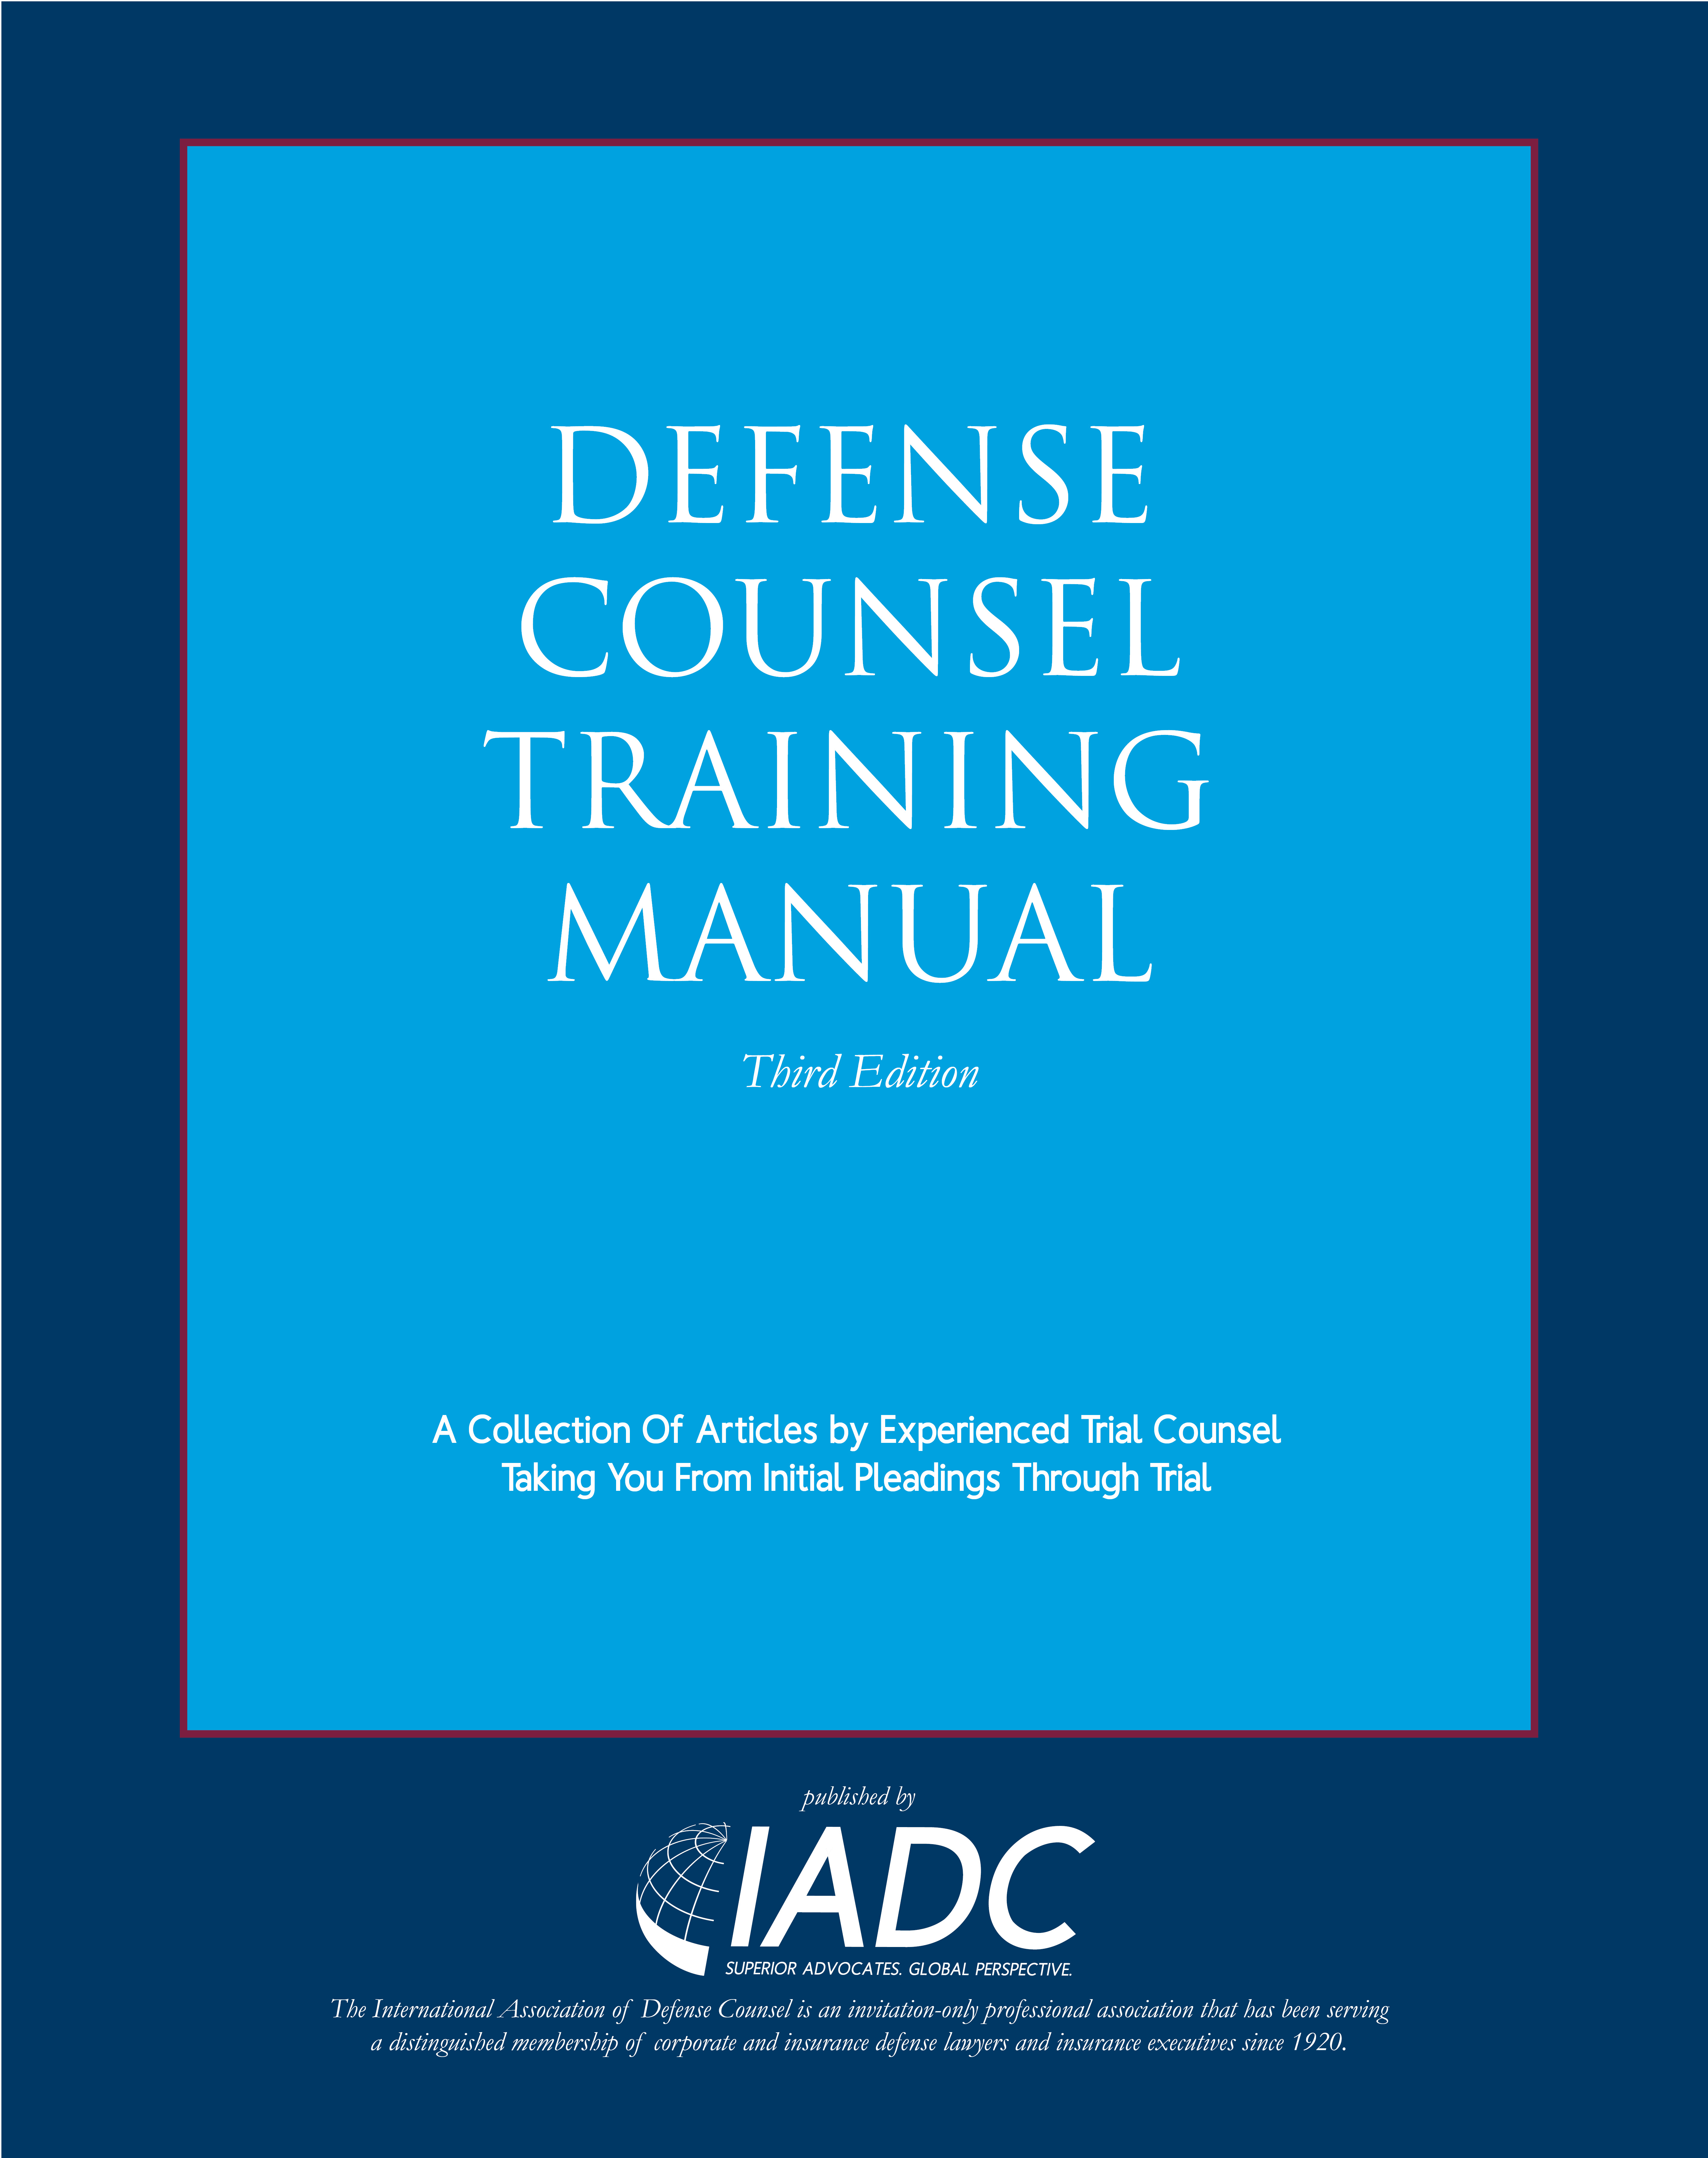 Defense Counsel Training Manual